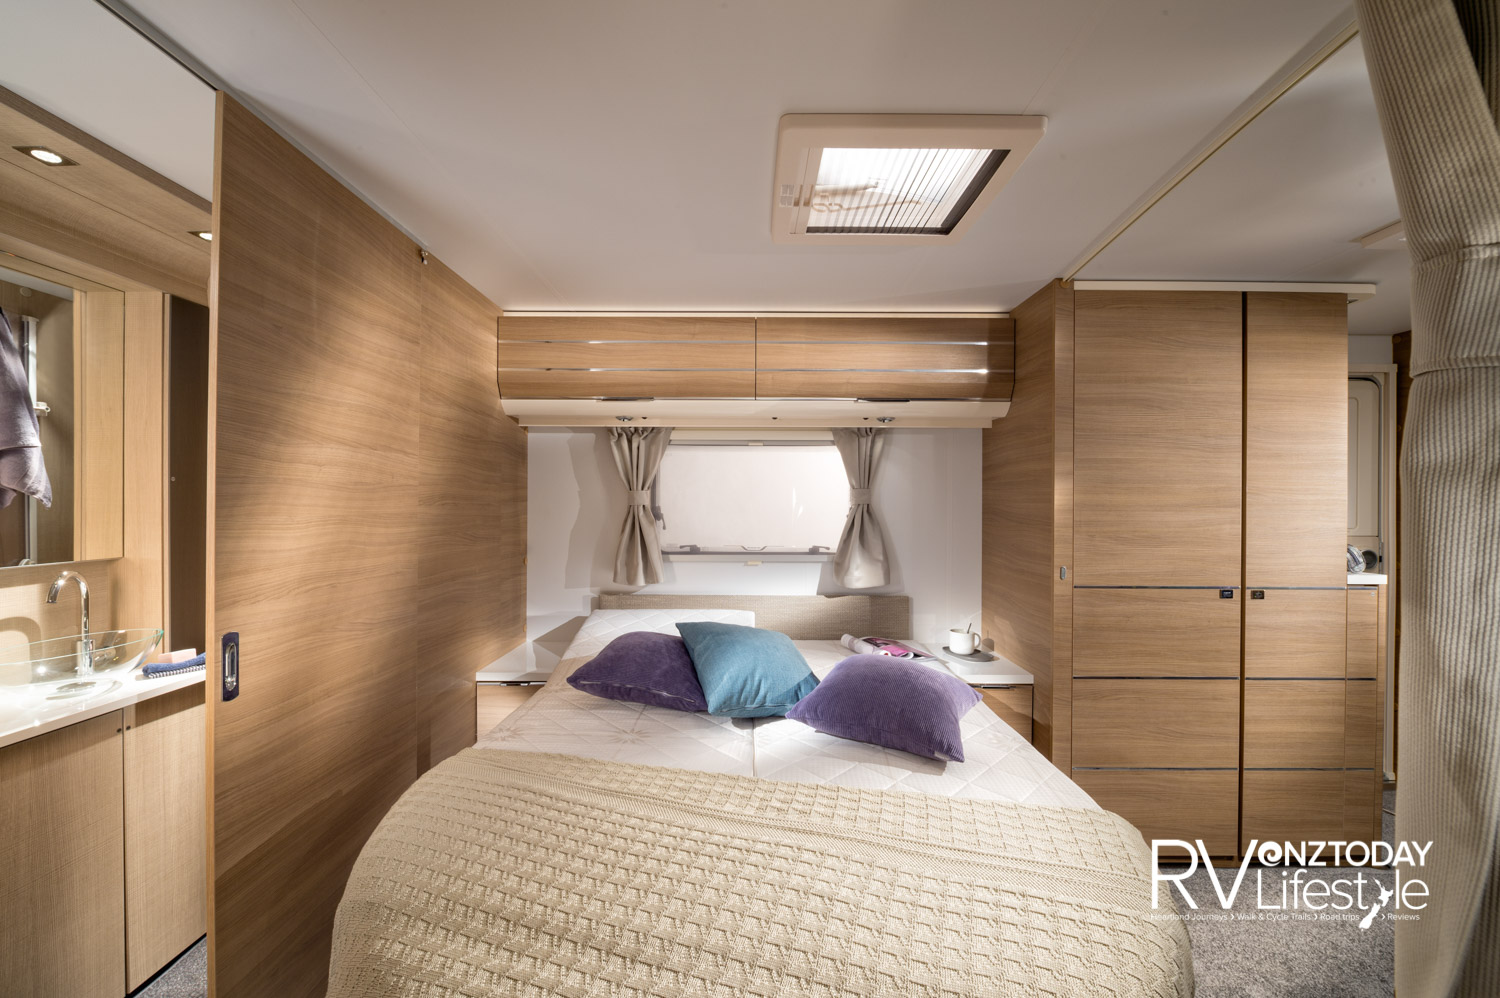 The island bed layout will be popular. Side drawers and shelf on each side, overhead locker storage with LED strip lighting effects, reading lights and privacy curtain to the rest of the living space. Drawers and wardrobe storage on the wall beside the habitation entrance door